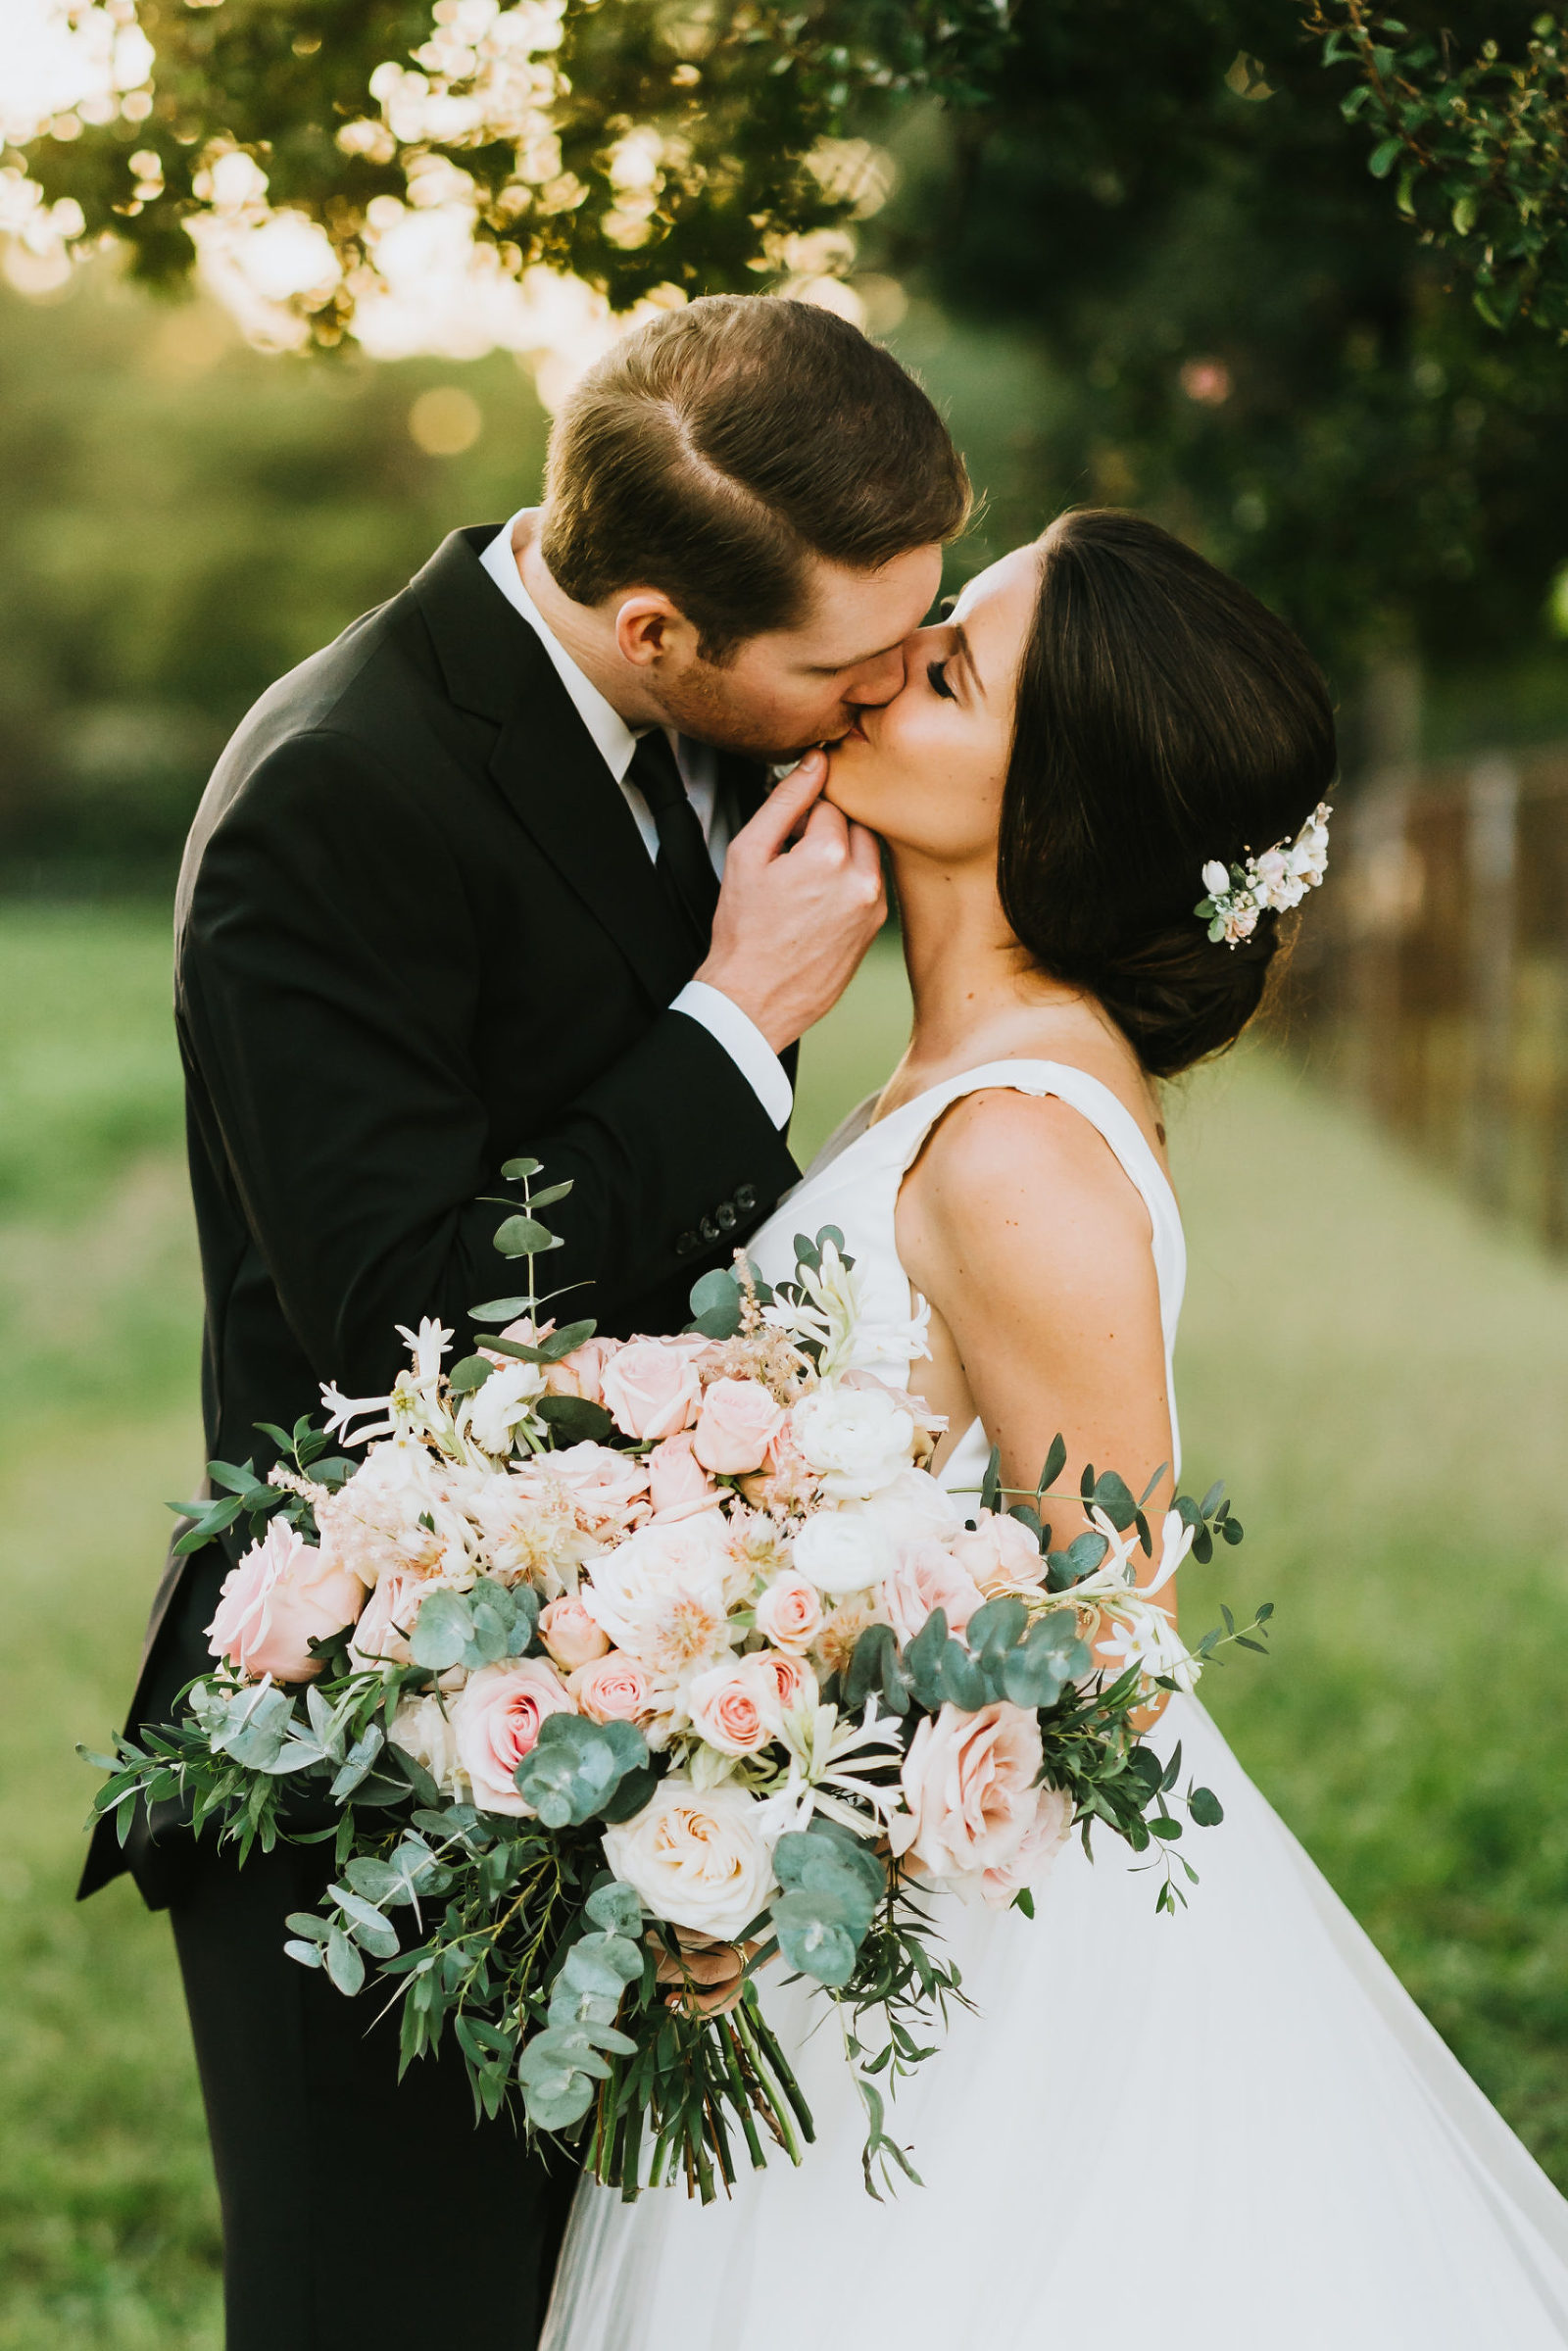 bride and groom kiss under a tree at sunset